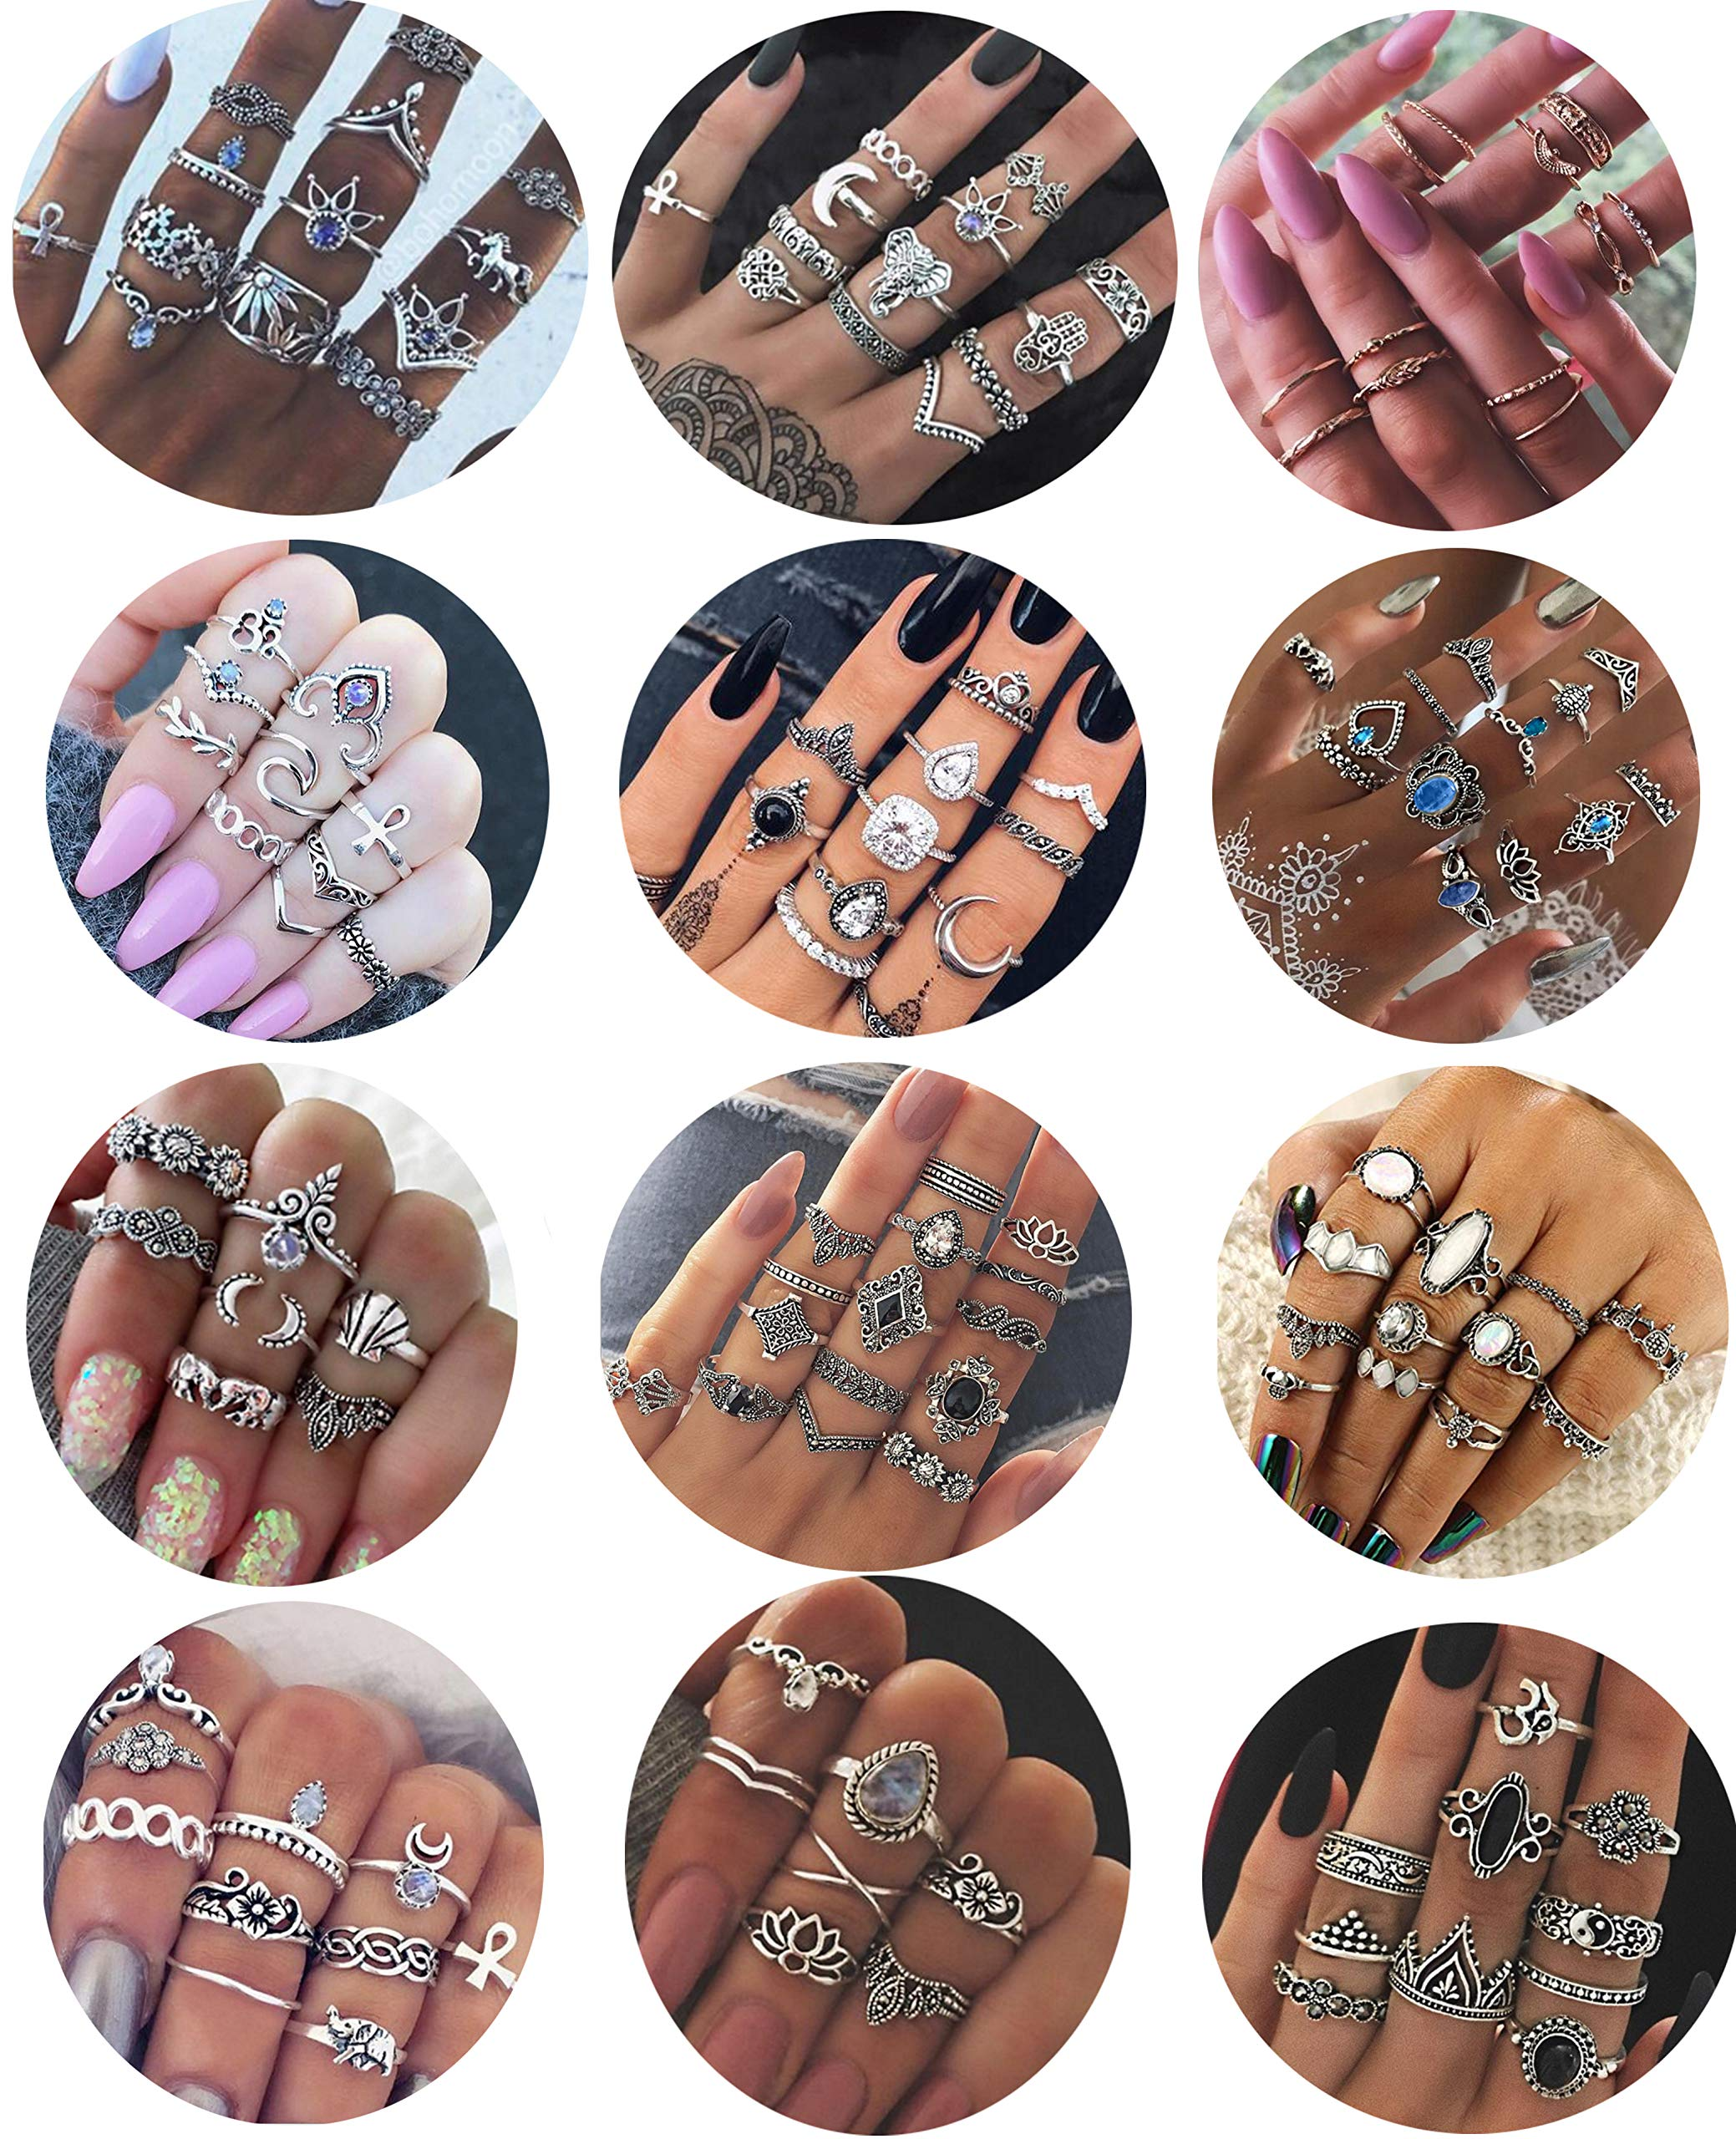 LOYALLOOK 132PCS Bohemia Knuckle Ring Set Women Girls Hollow Silver Fashion Finger Rings Vintage Stackable Knuckle Midi Rings Set